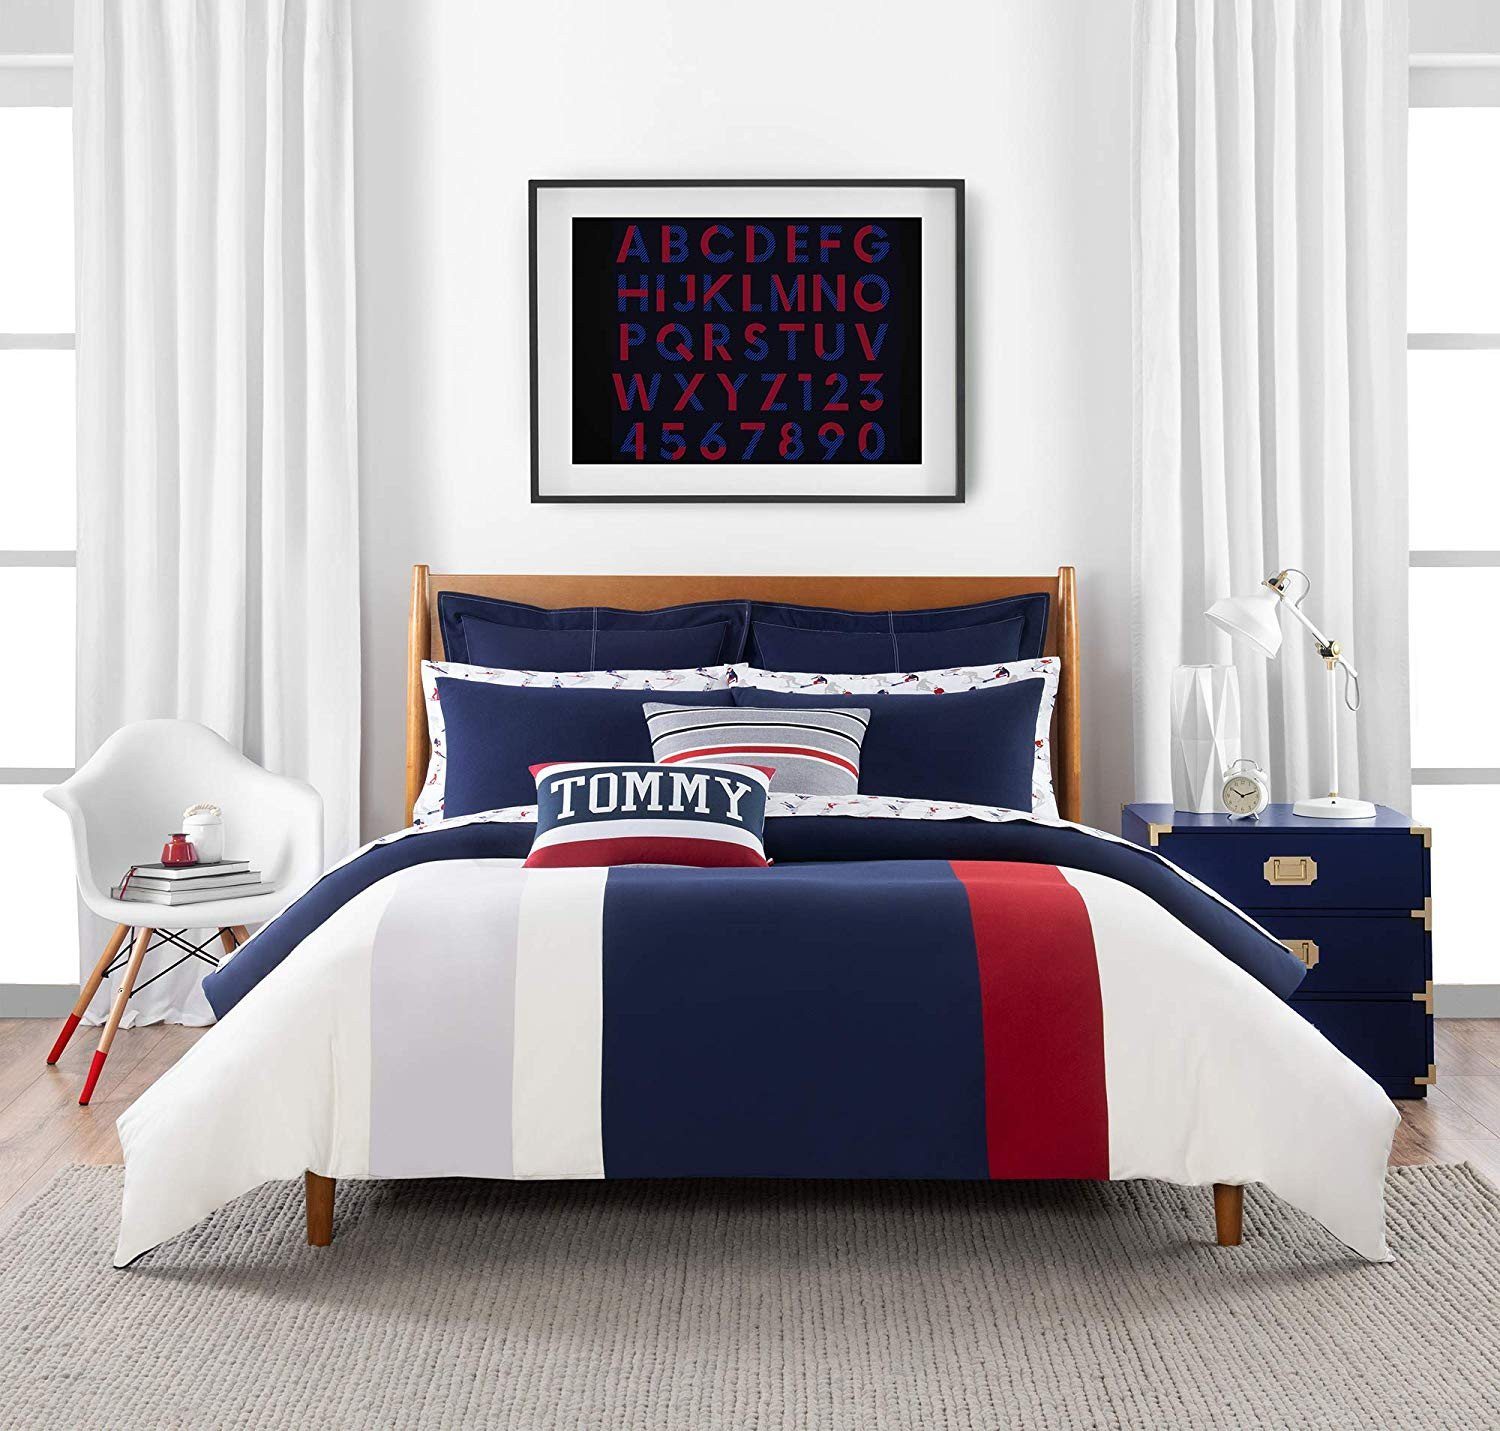 Red and Gray Bedroom Lovely Amazon tommy Hilfiger Clash Of 85 Stripe Bedding